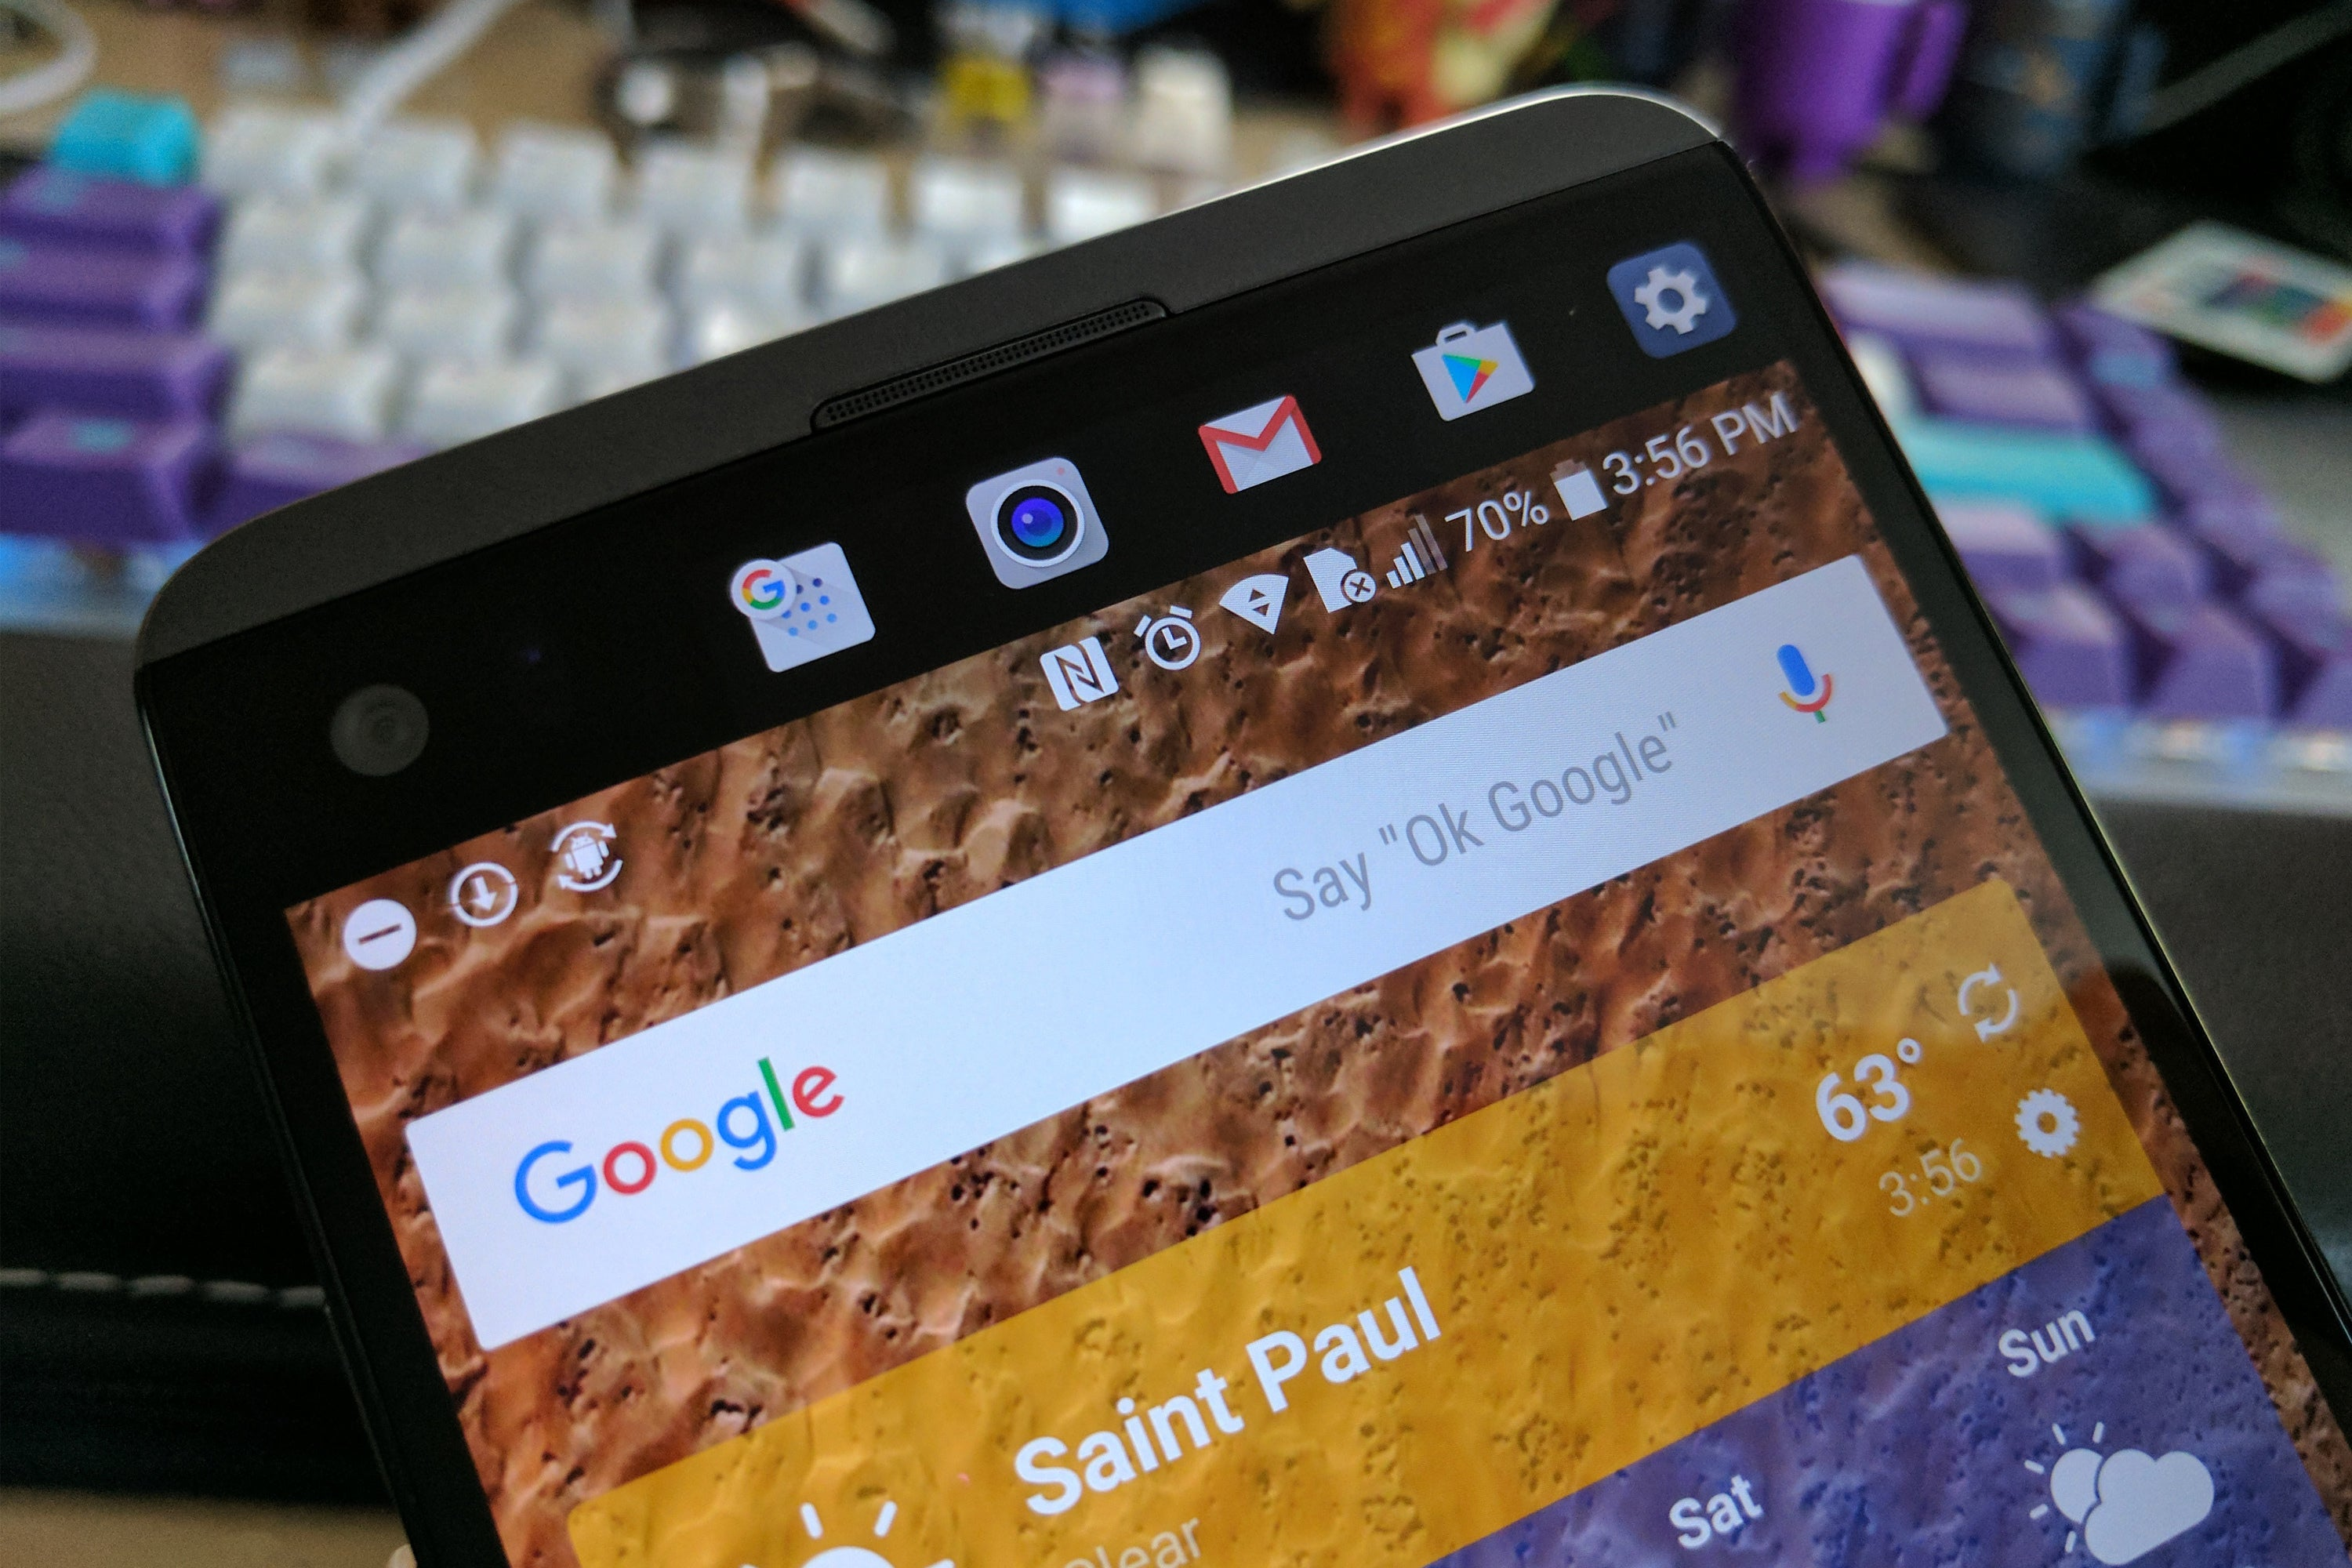 12 tips and tricks to get the most from your LG V20 | Greenbot